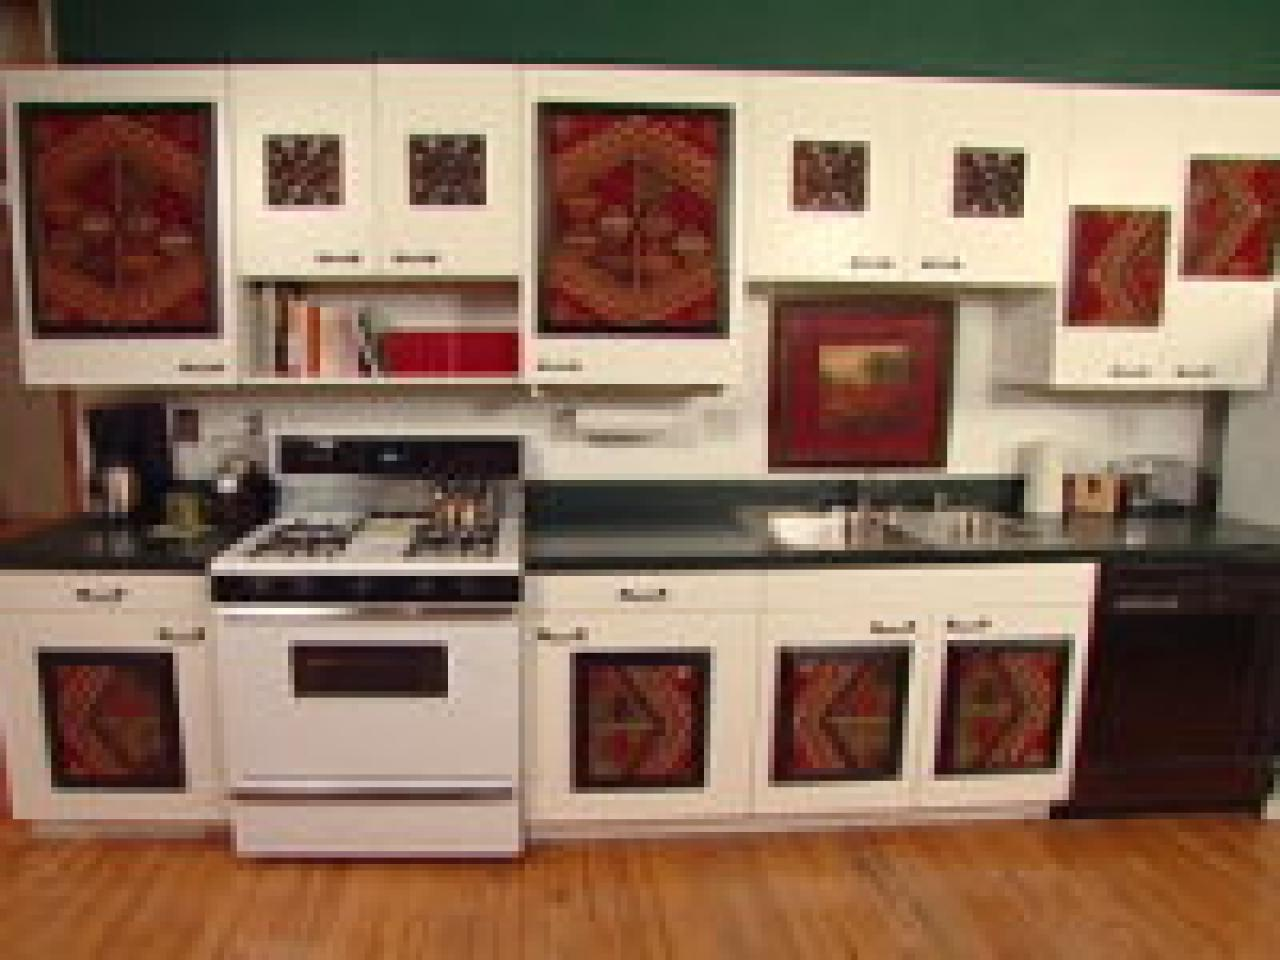 kitchen cabinet facelift ideas kitchen cabinets ideas Kitchen cabinet facelift ideas